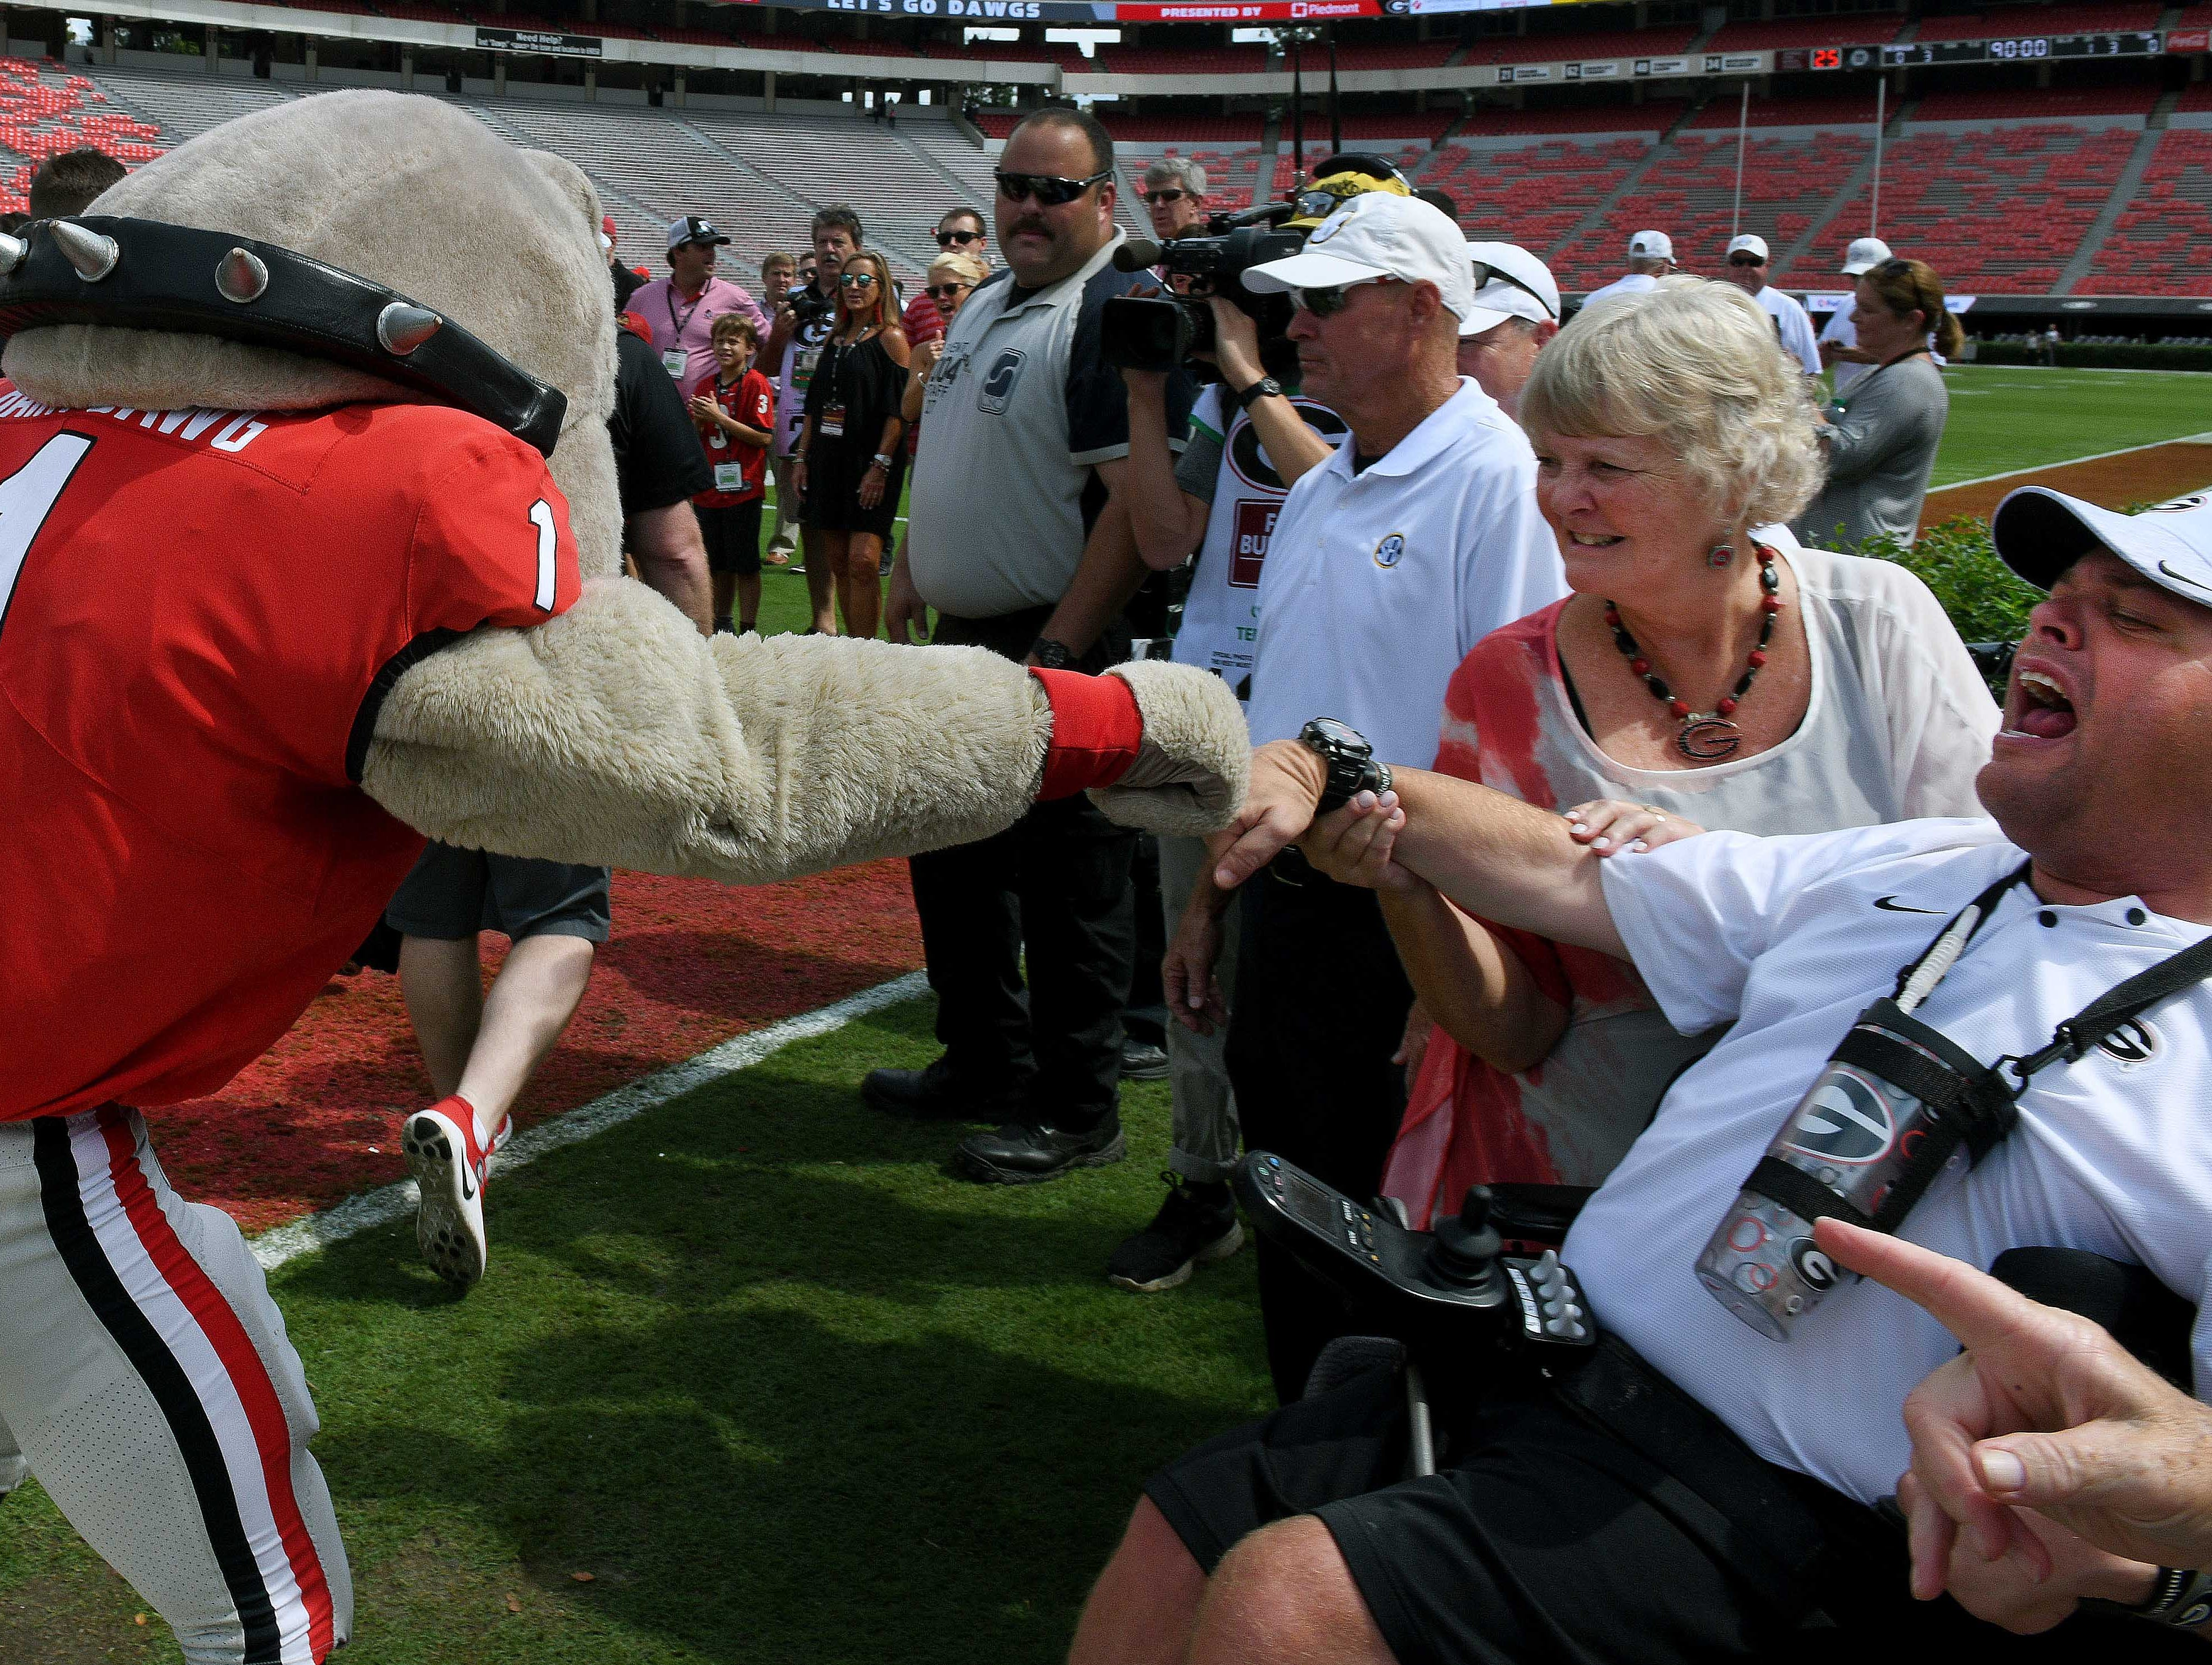 Harry the Dawg greets Georgia fans during the Dawg Walk before their game against Tennesse Saturday, September 29, 2018 at Sanford Stadium in Athens, GA.